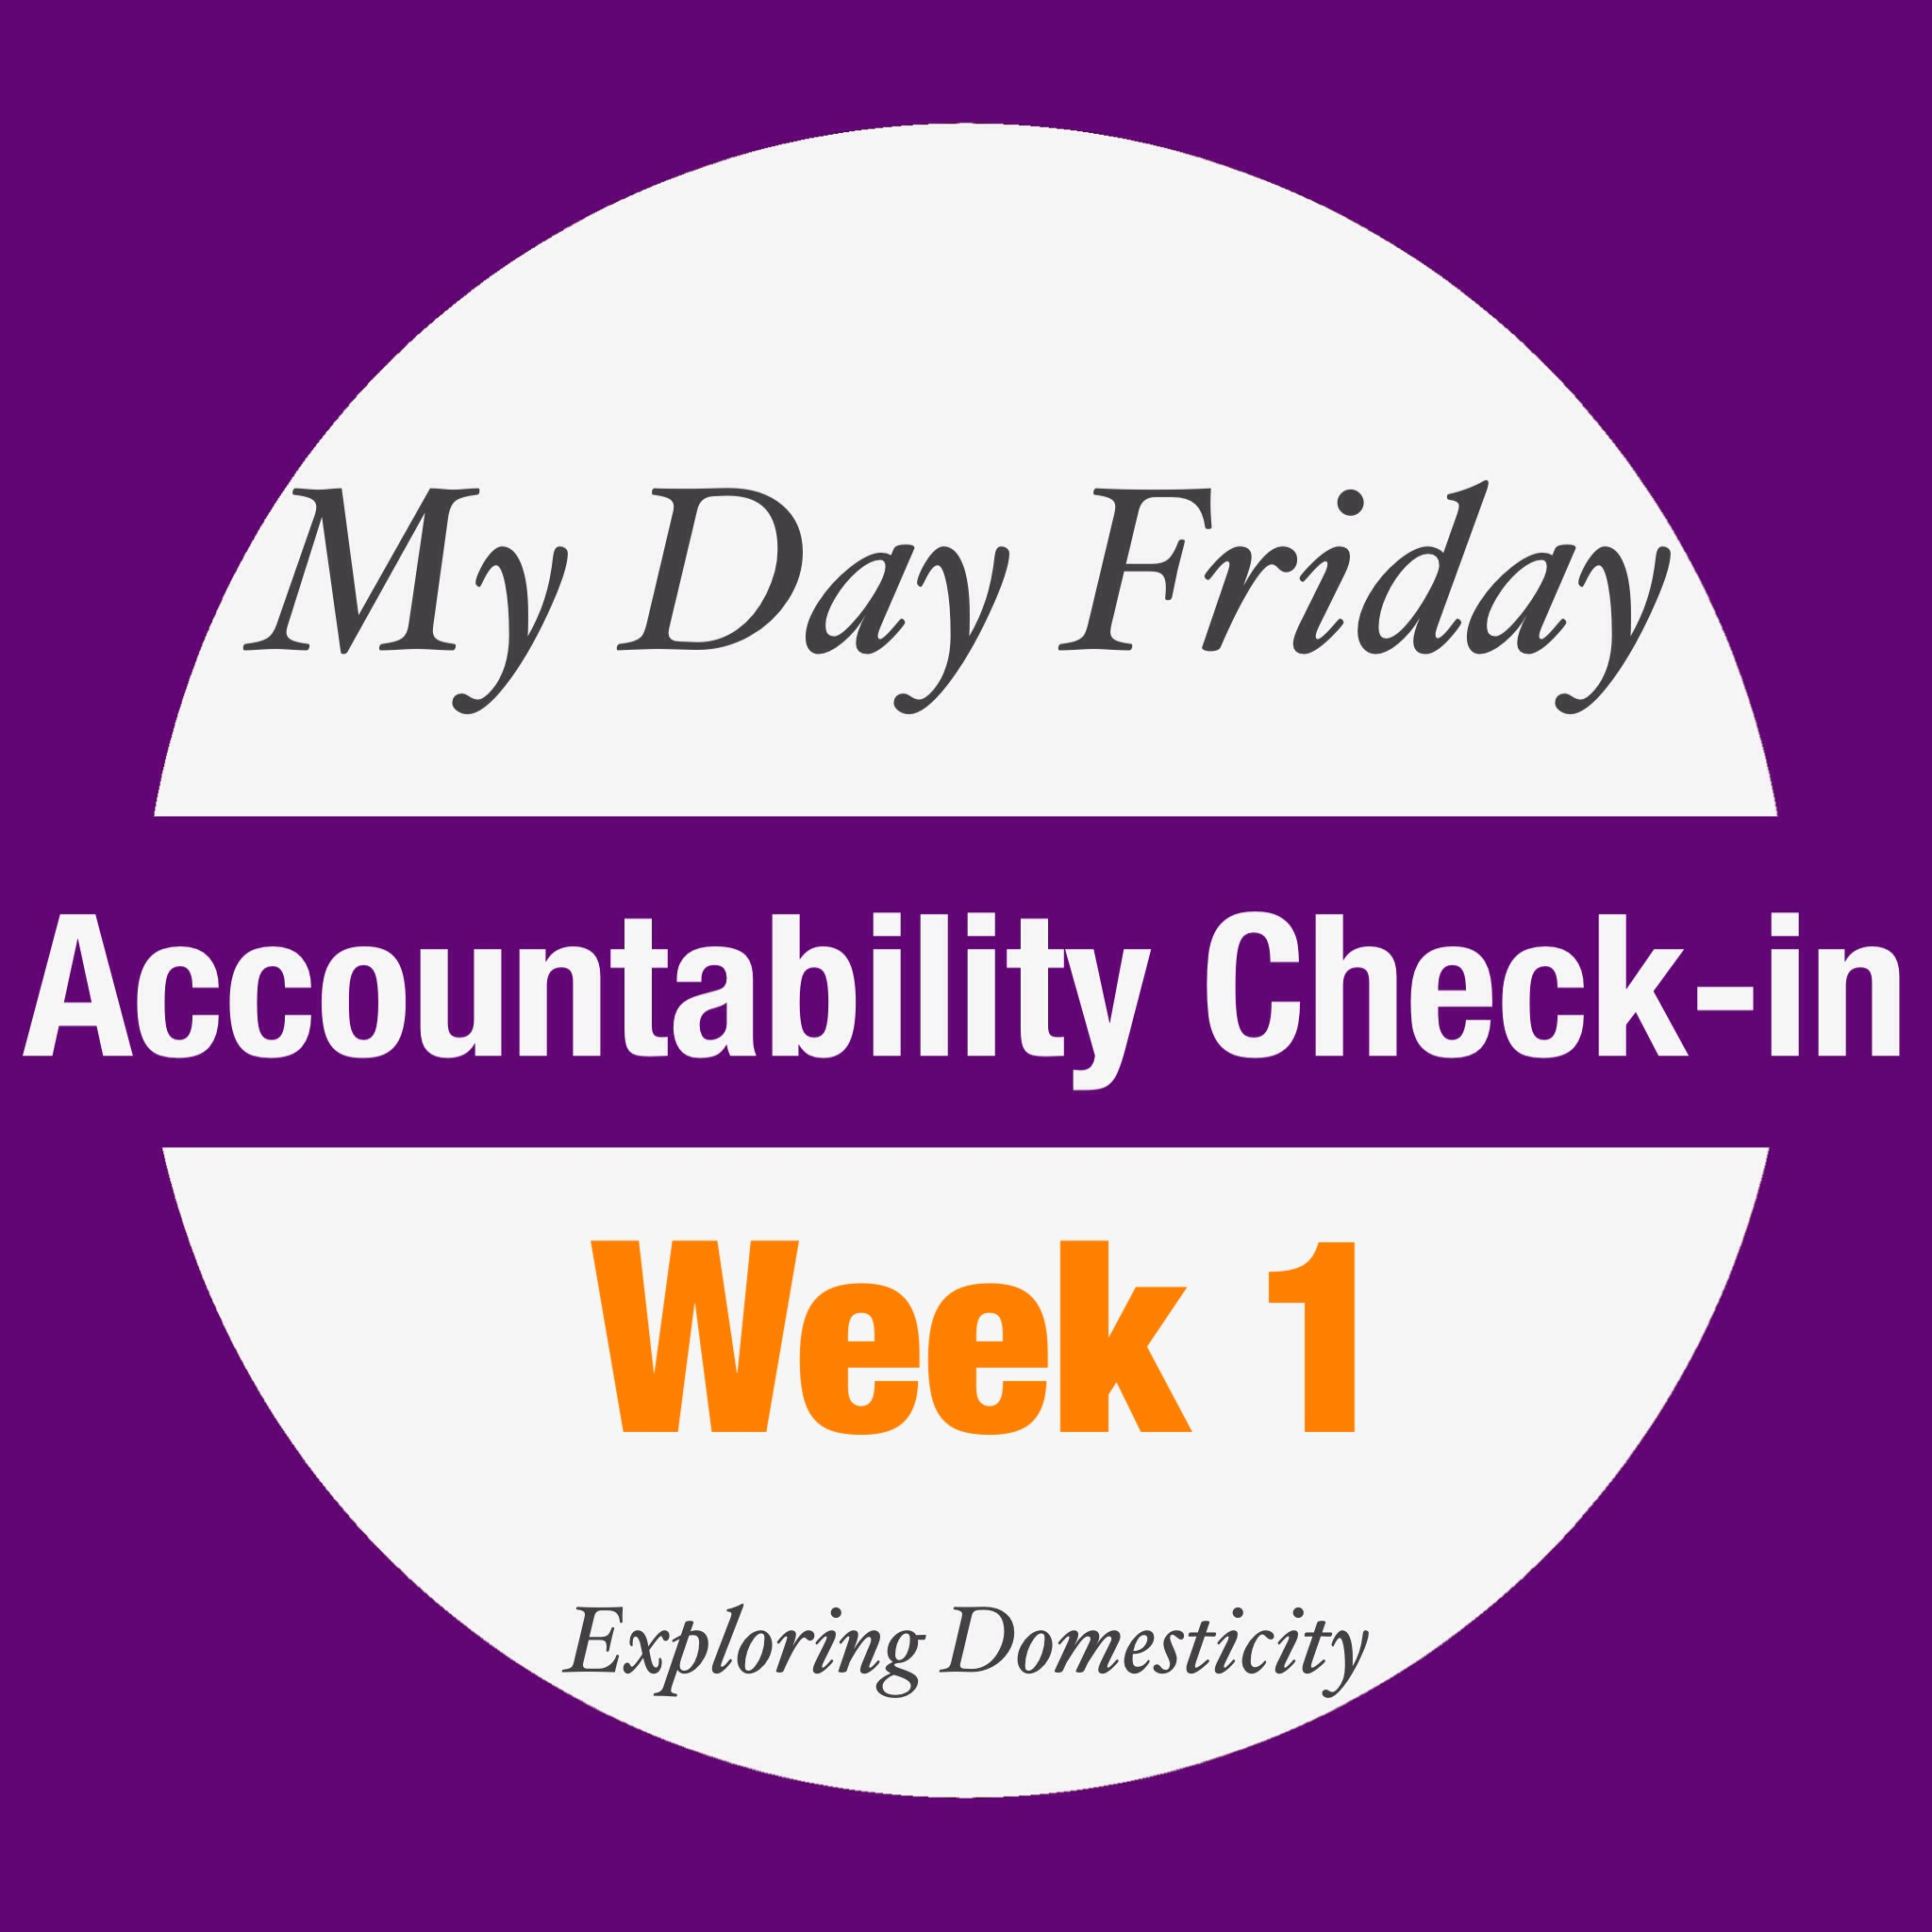 My Day Friday Accountability Check-in: Week 1